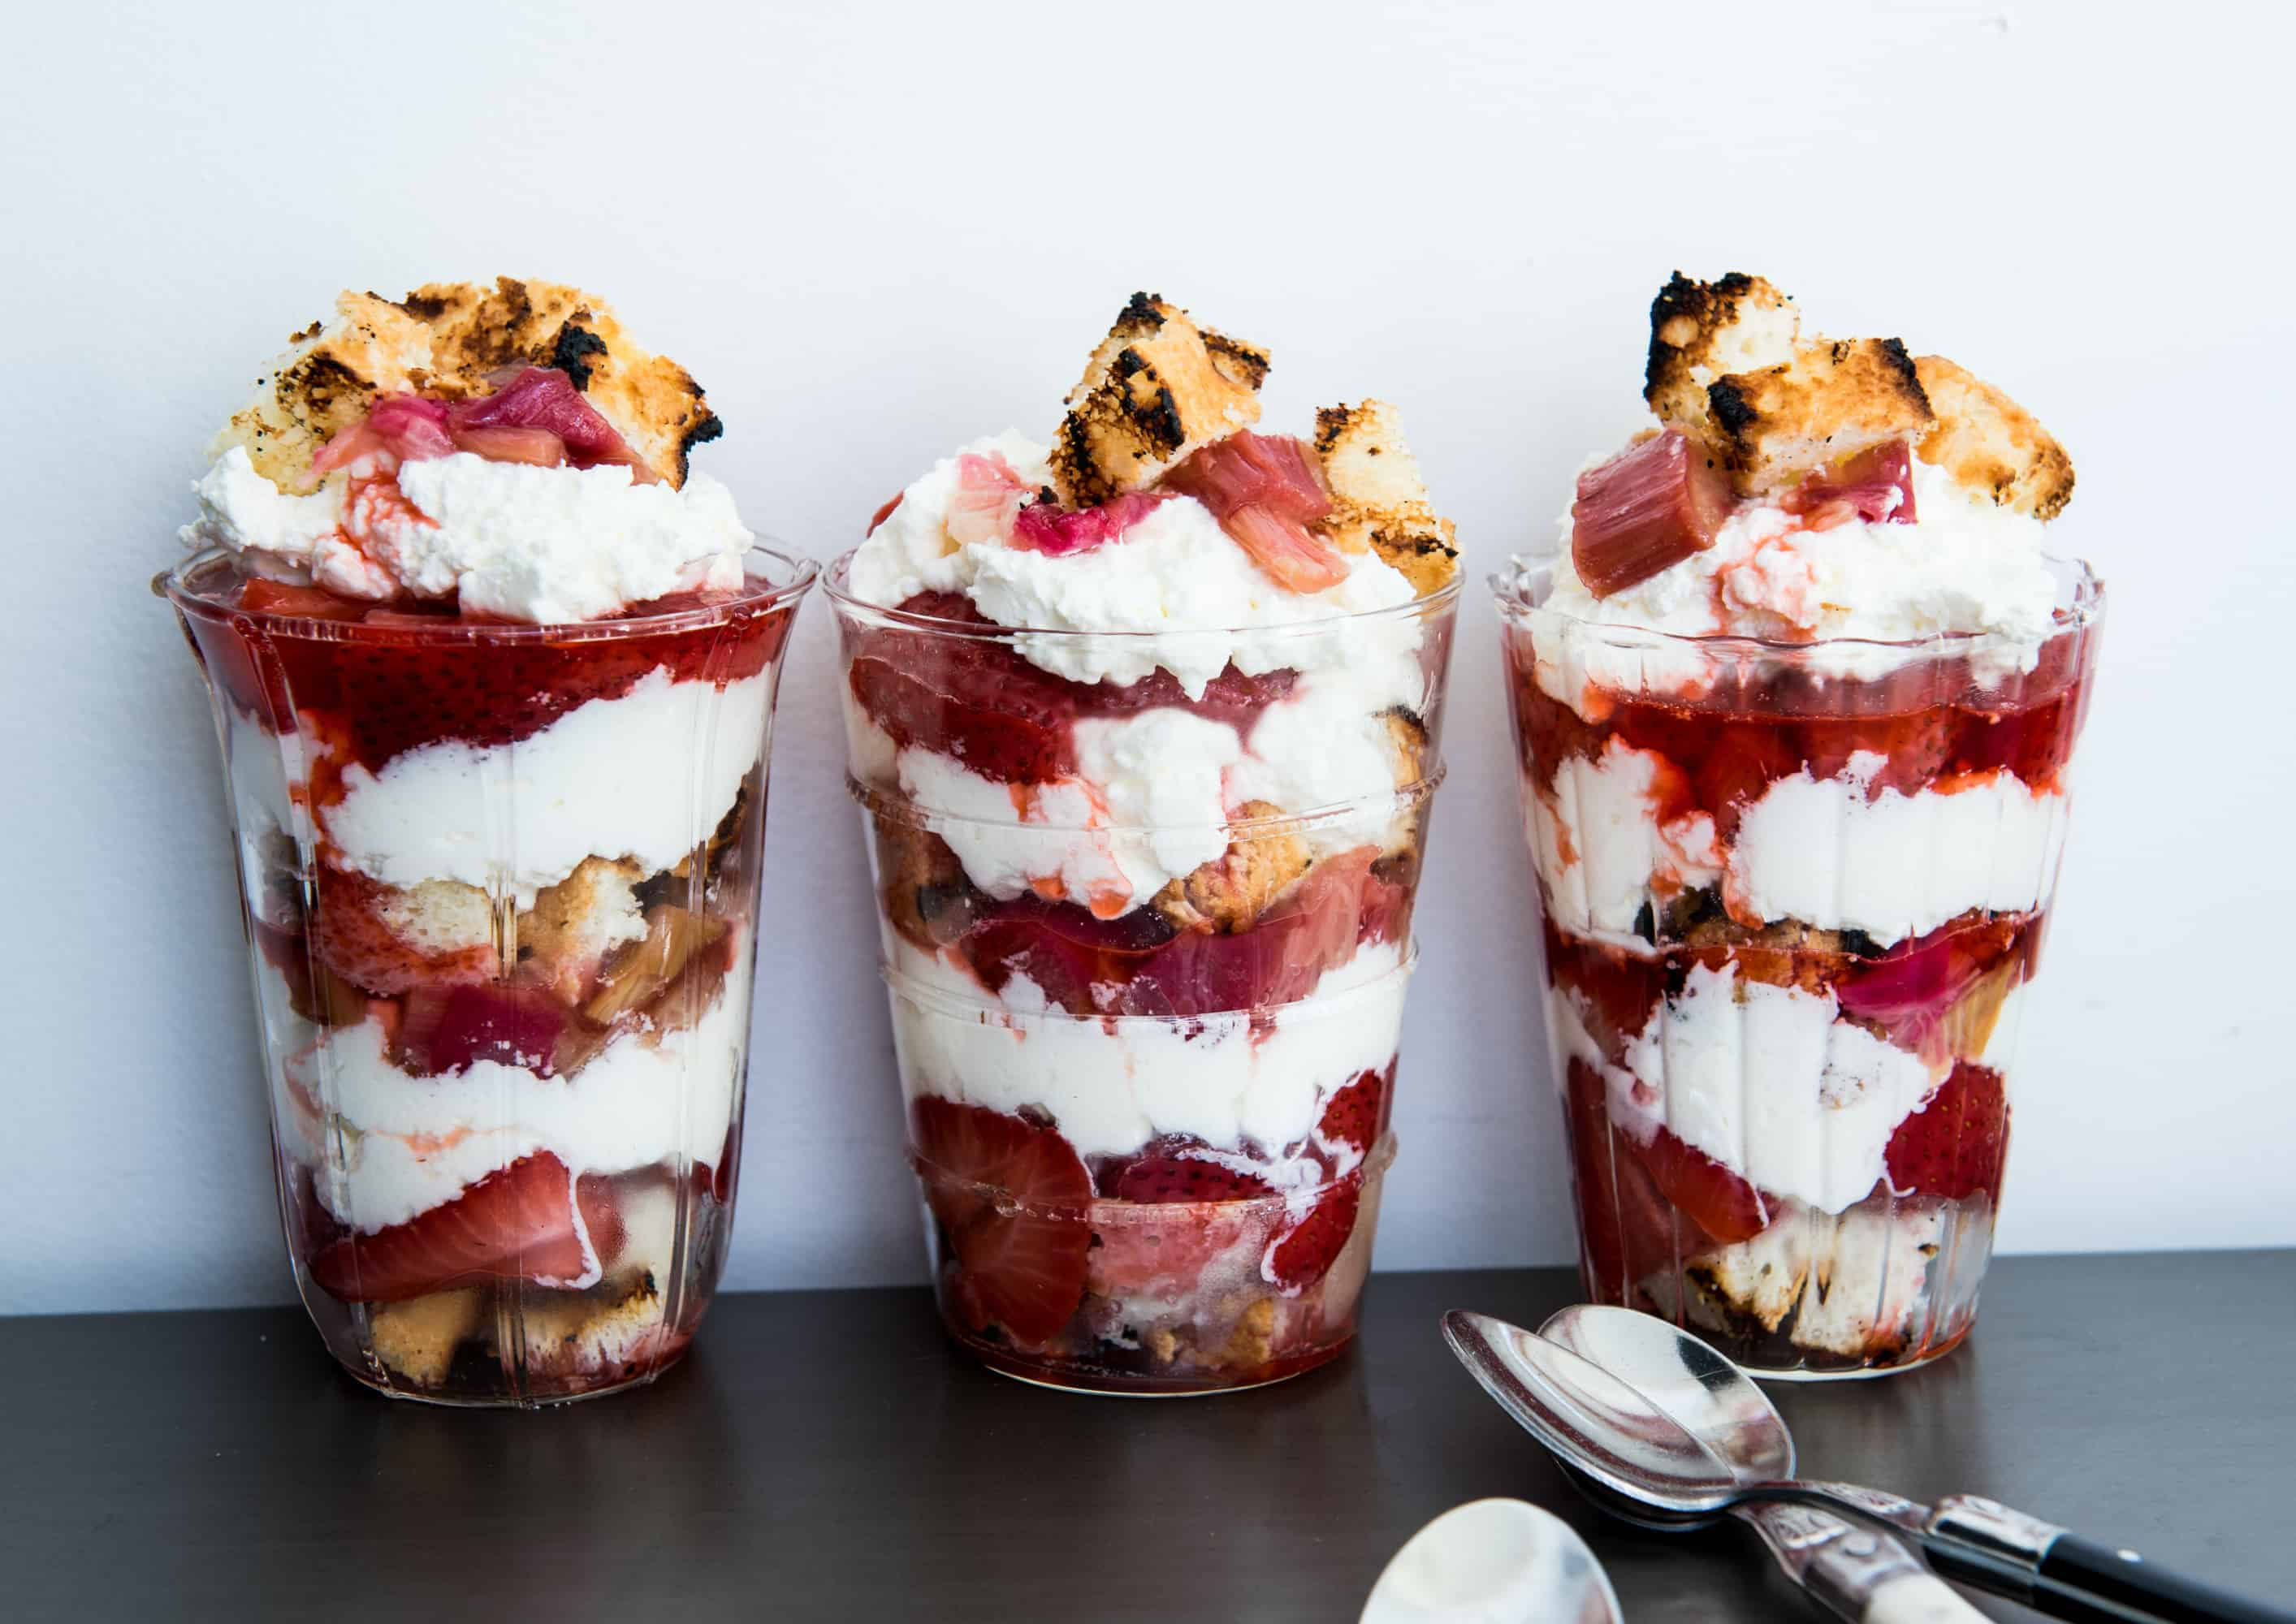 three layered rhubarb strawberry parfaits in clear glasses in a row. Layers of grilled angel food cake, grilled strawberries, grilled rhubarb and whipped cream